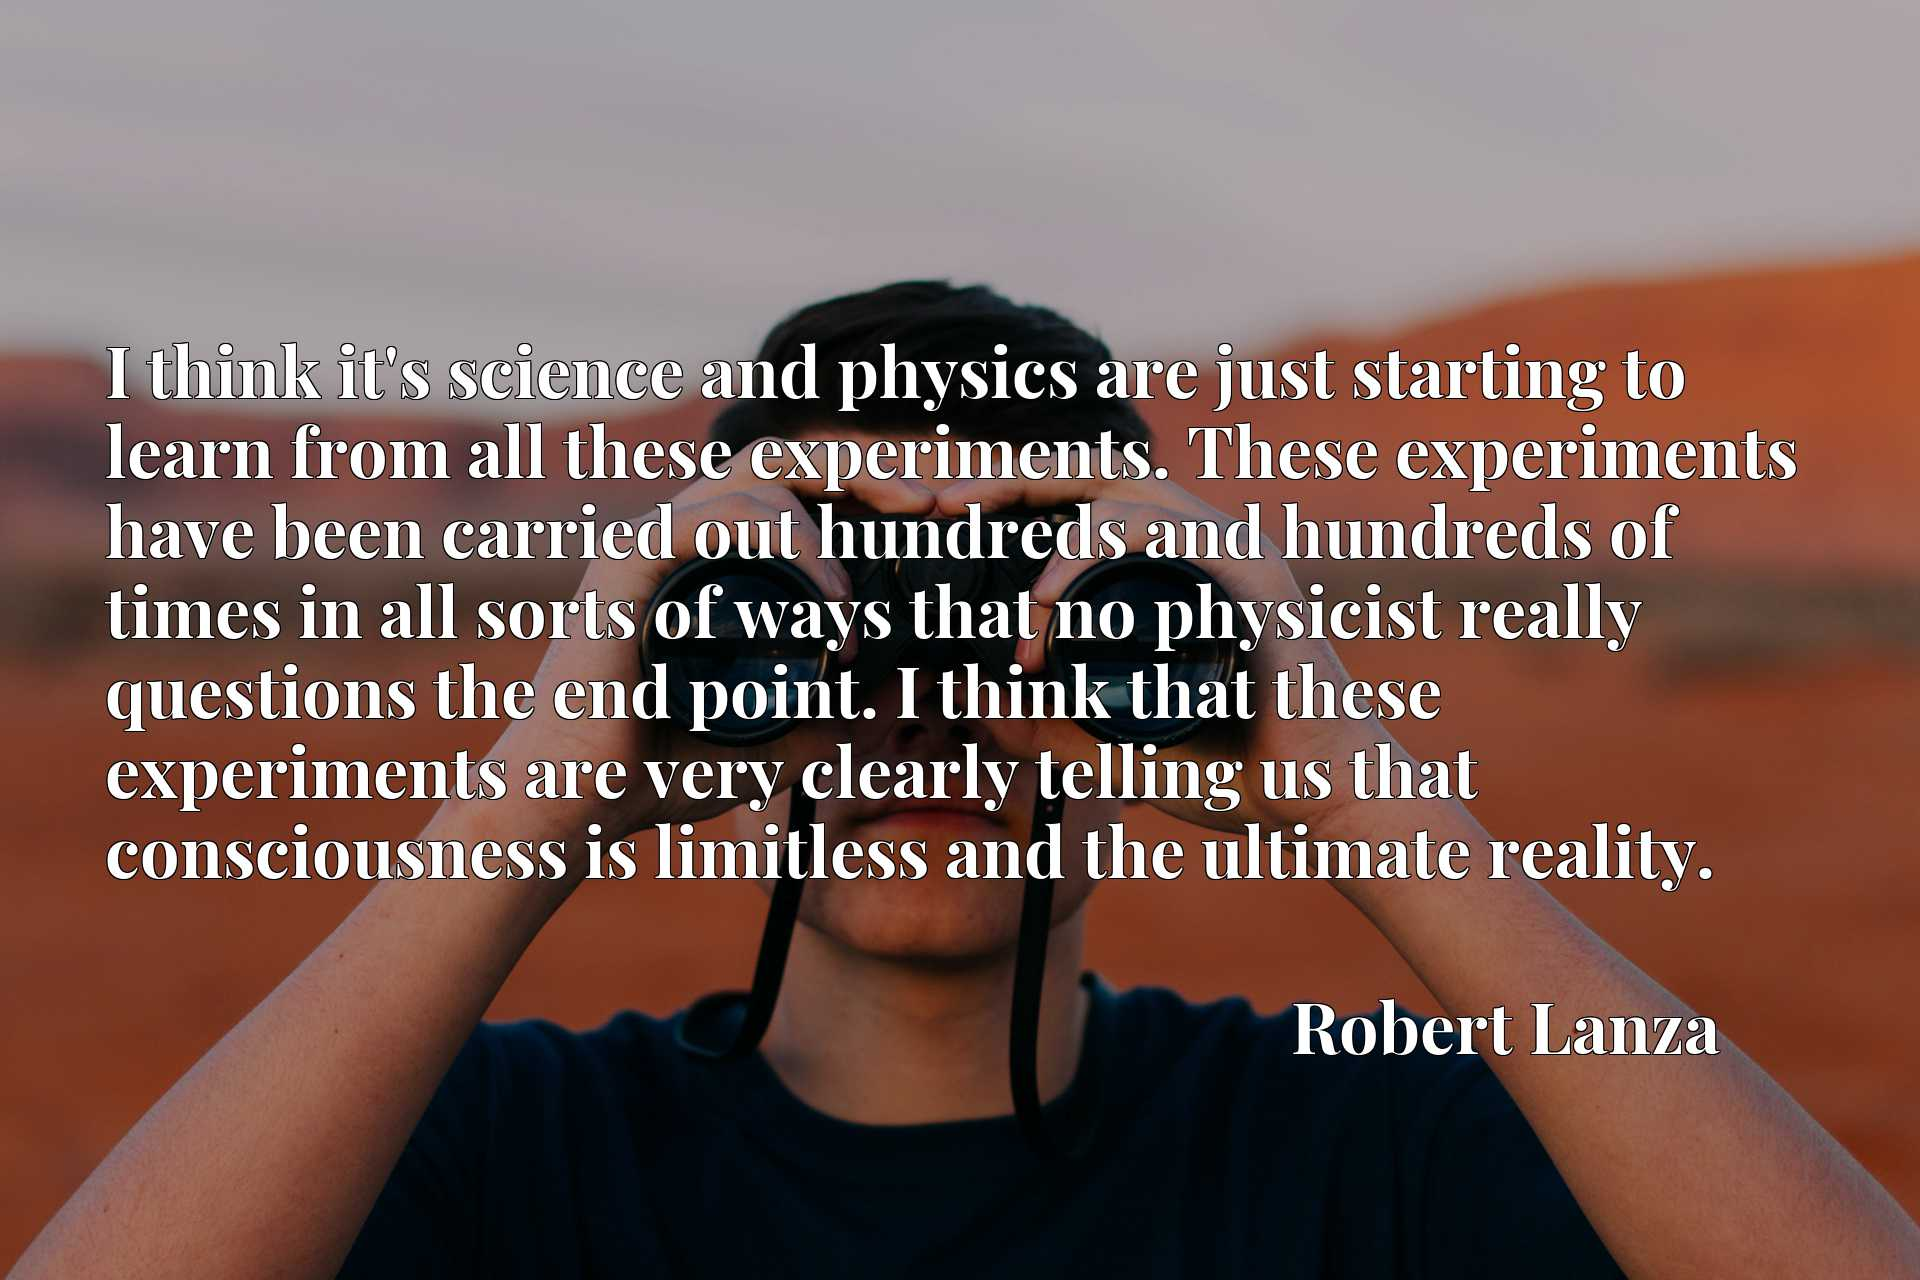 I think it's science and physics are just starting to learn from all these experiments. These experiments have been carried out hundreds and hundreds of times in all sorts of ways that no physicist really questions the end point. I think that these experiments are very clearly telling us that consciousness is limitless and the ultimate reality.